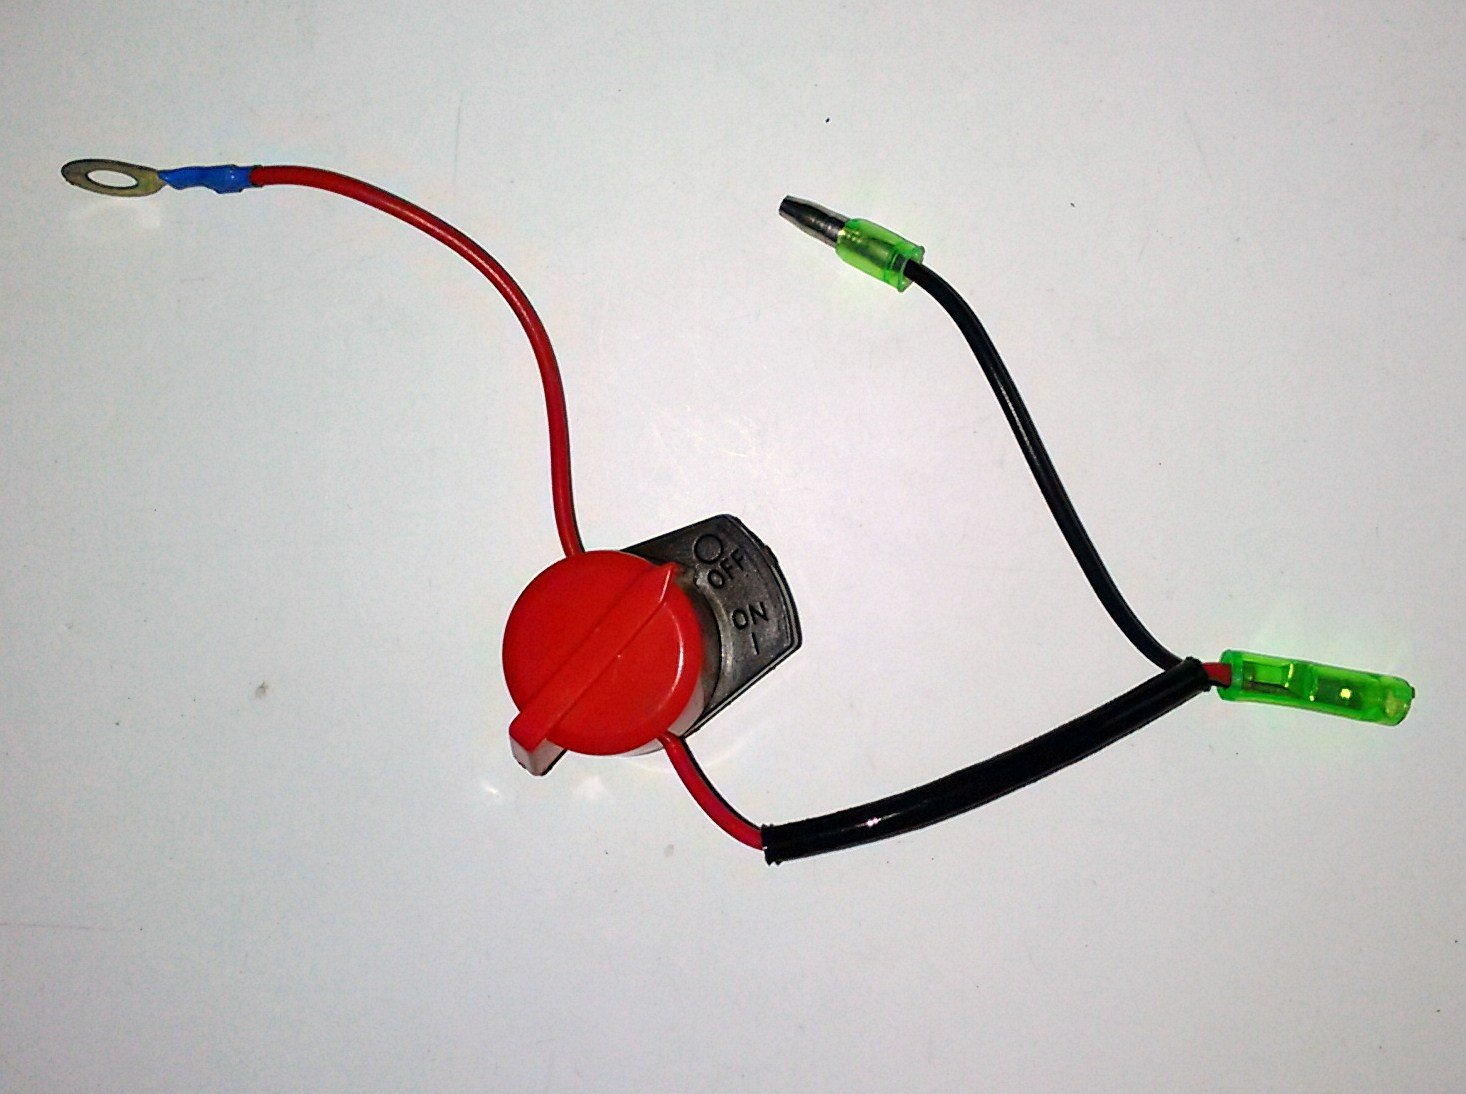 Gx390 Kill Switch Wiring Reinvent Your Diagram Car Battery Amazon Com On Off Engine Stop Fits Honda Gx120 Gx160 Rh Small